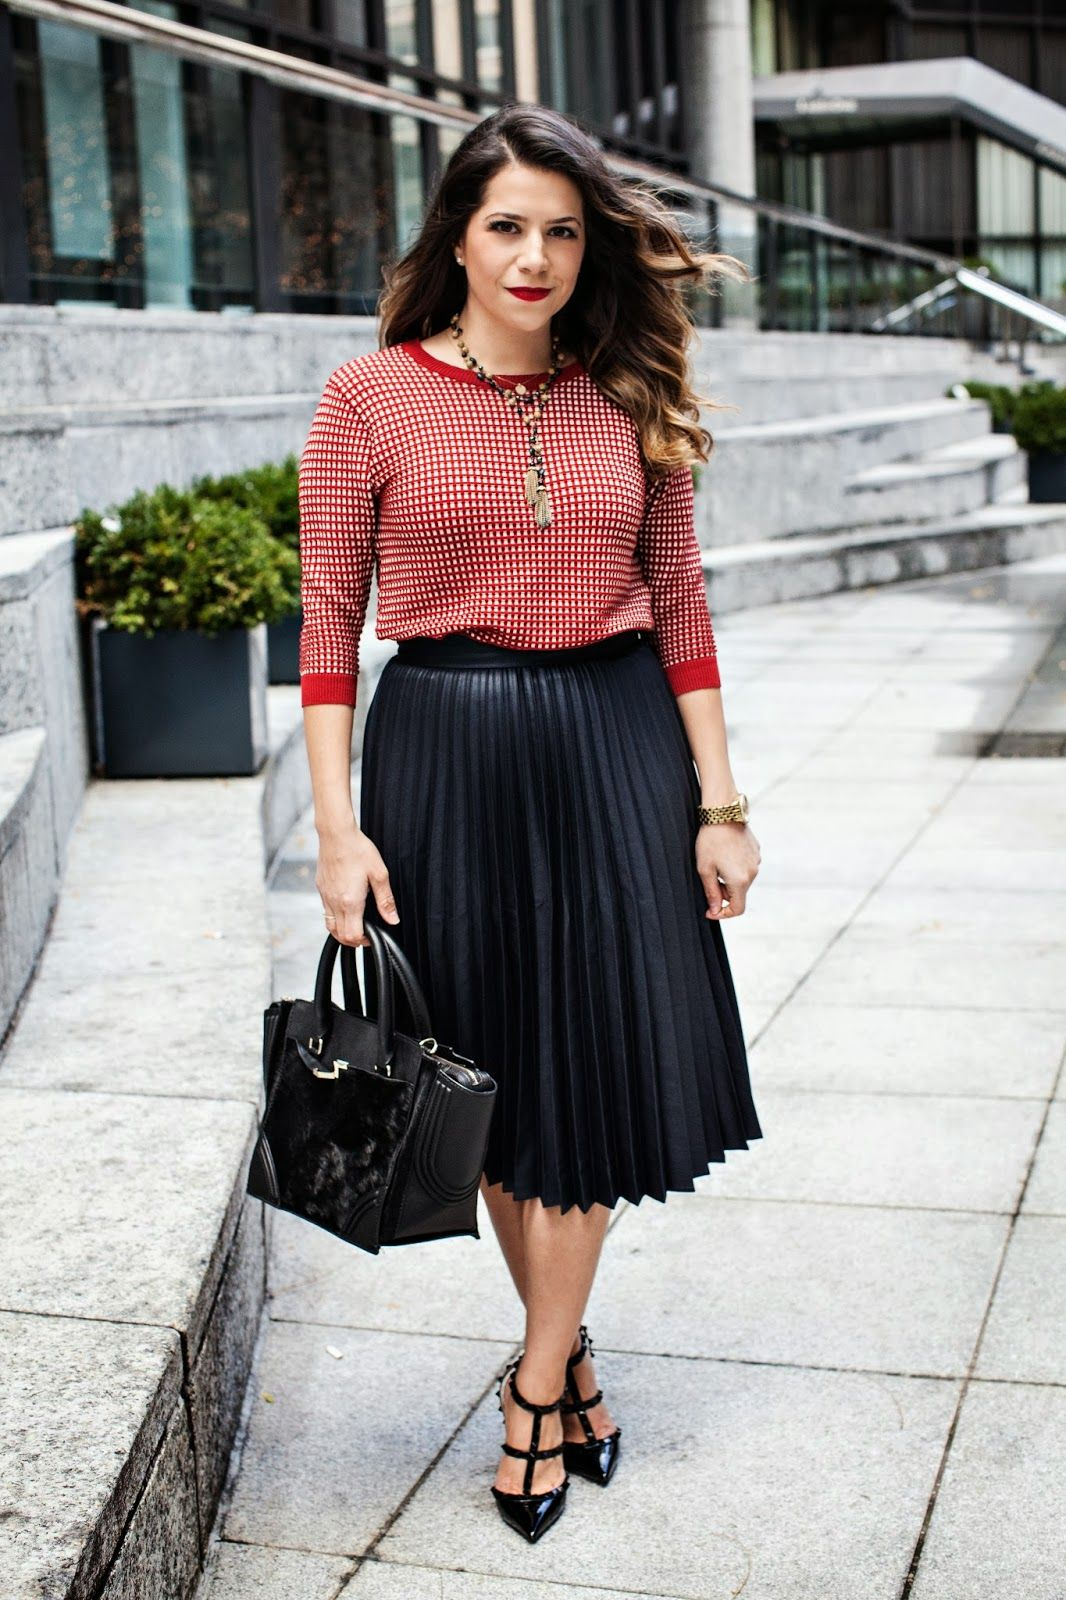 Corporate Catwalk - Fashion Blog: Wool Coat & Grey Midi Skirt | A ...